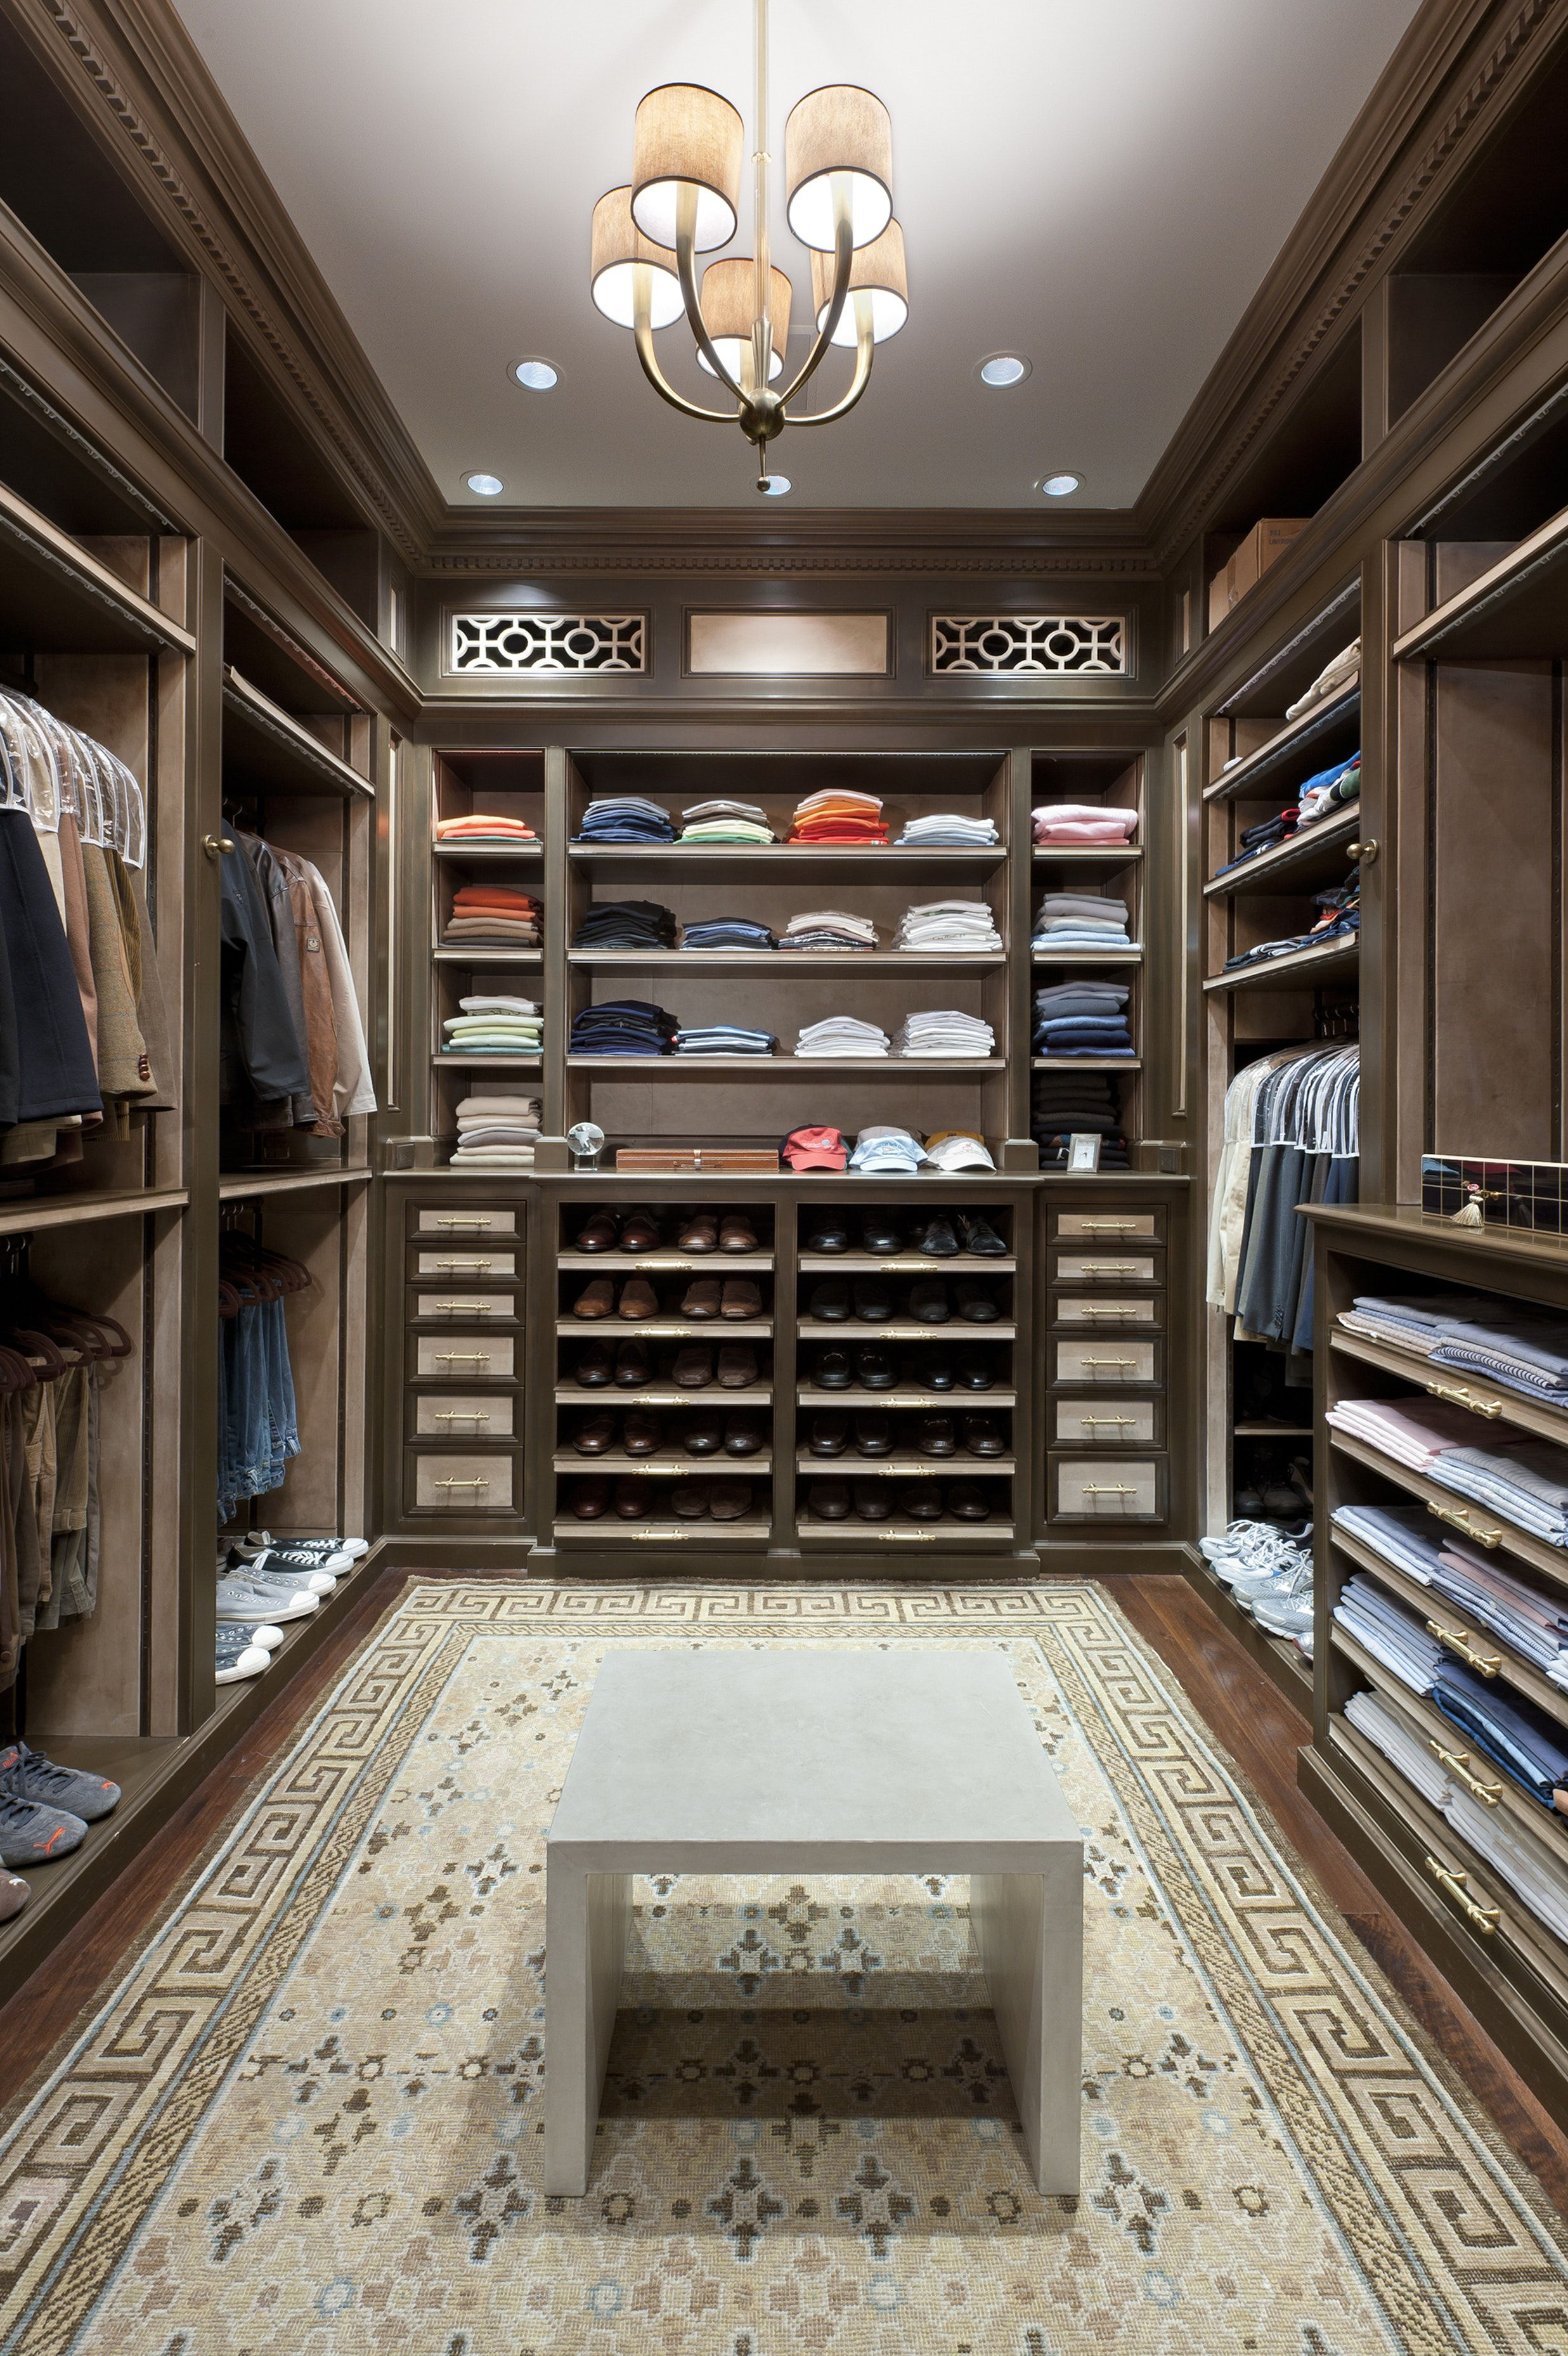 Captivating Interior Architecture Of Miami Indian Creek Home Featured In Architectural  Digest   His Closet By Brian Ou0027Keefe Architect   Lookbook